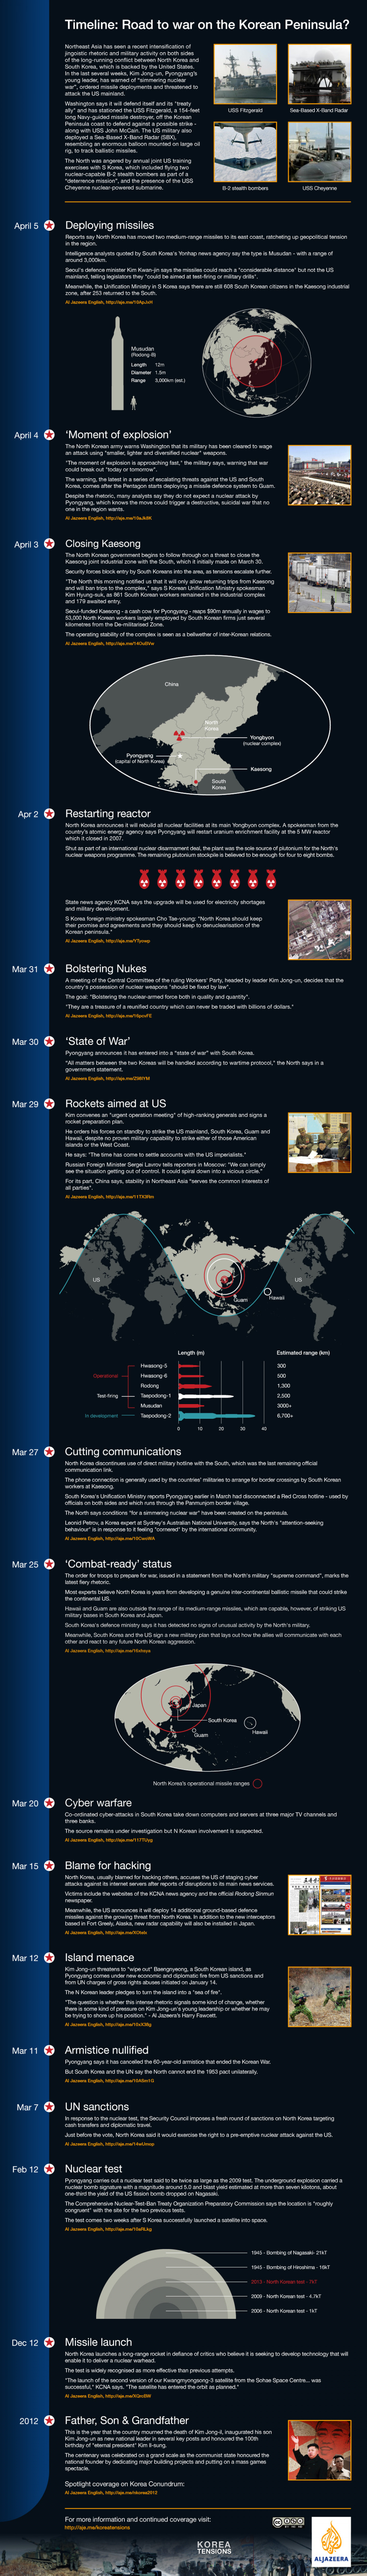 Road to war on the Korean Peninsula? Infographic